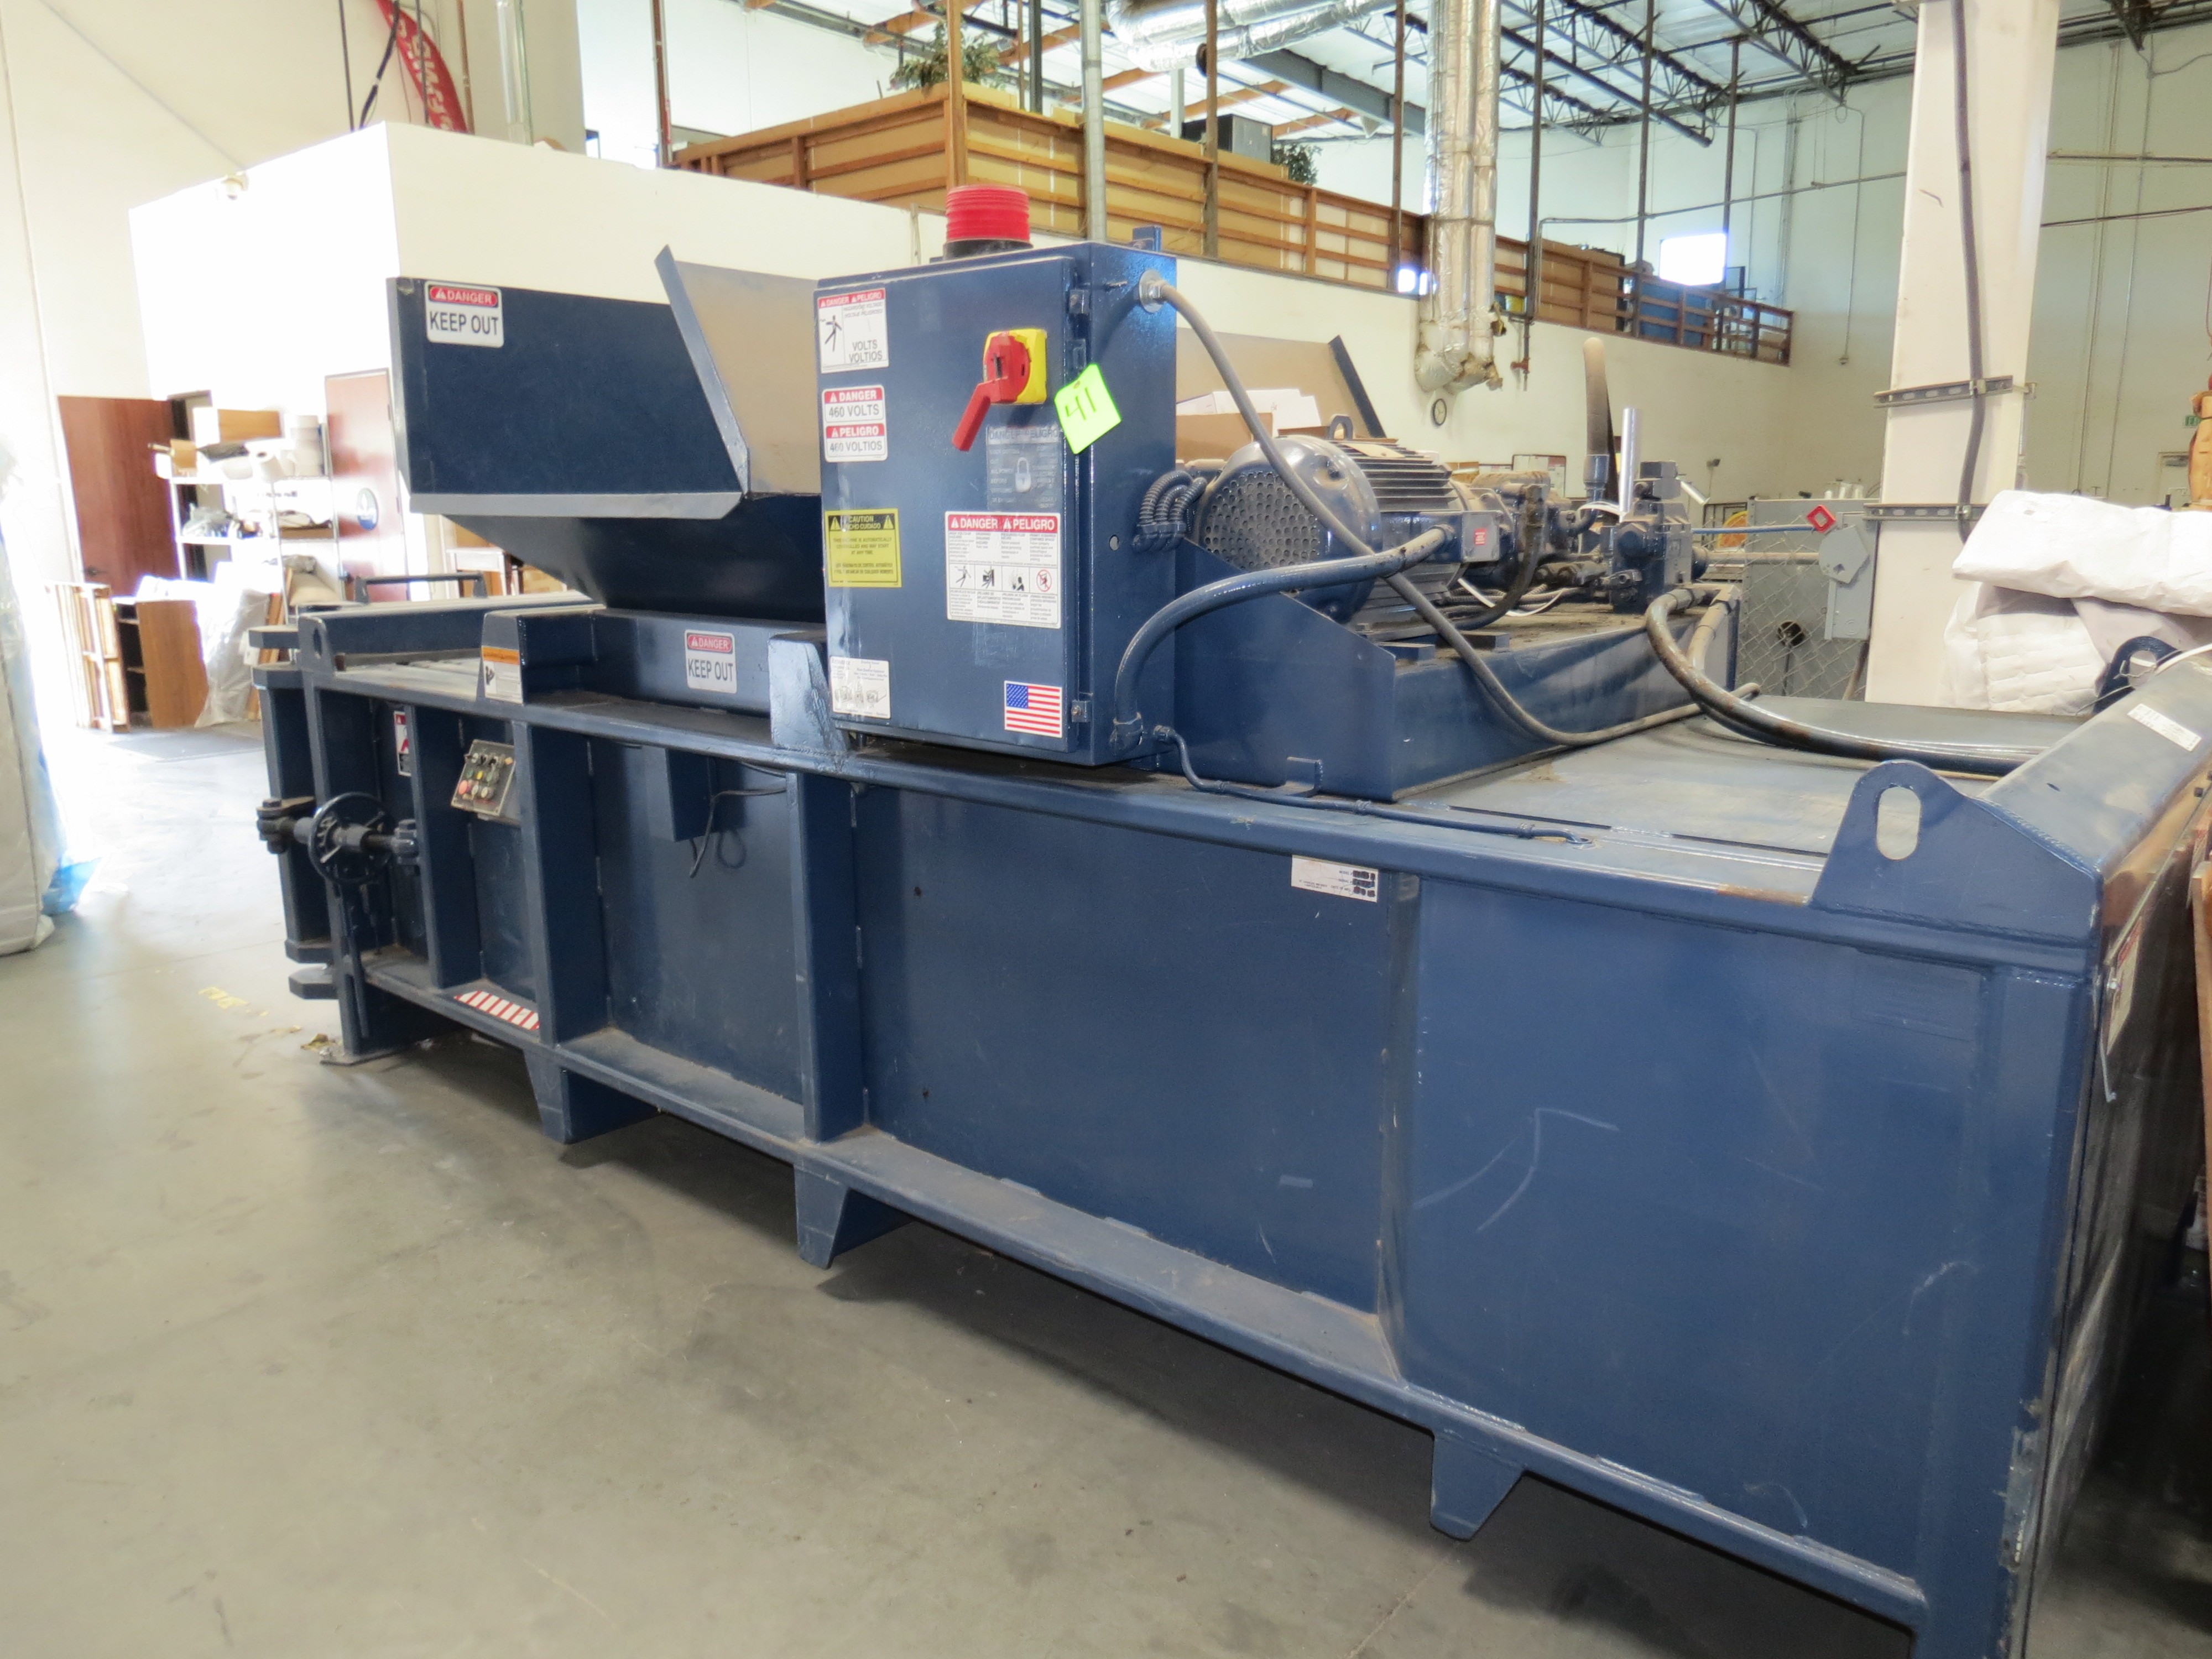 Excel EX602 Horizontal Baler 20HP, SN: EX2021 (Will Be Sold Subject to Confirmation) - Image 2 of 3